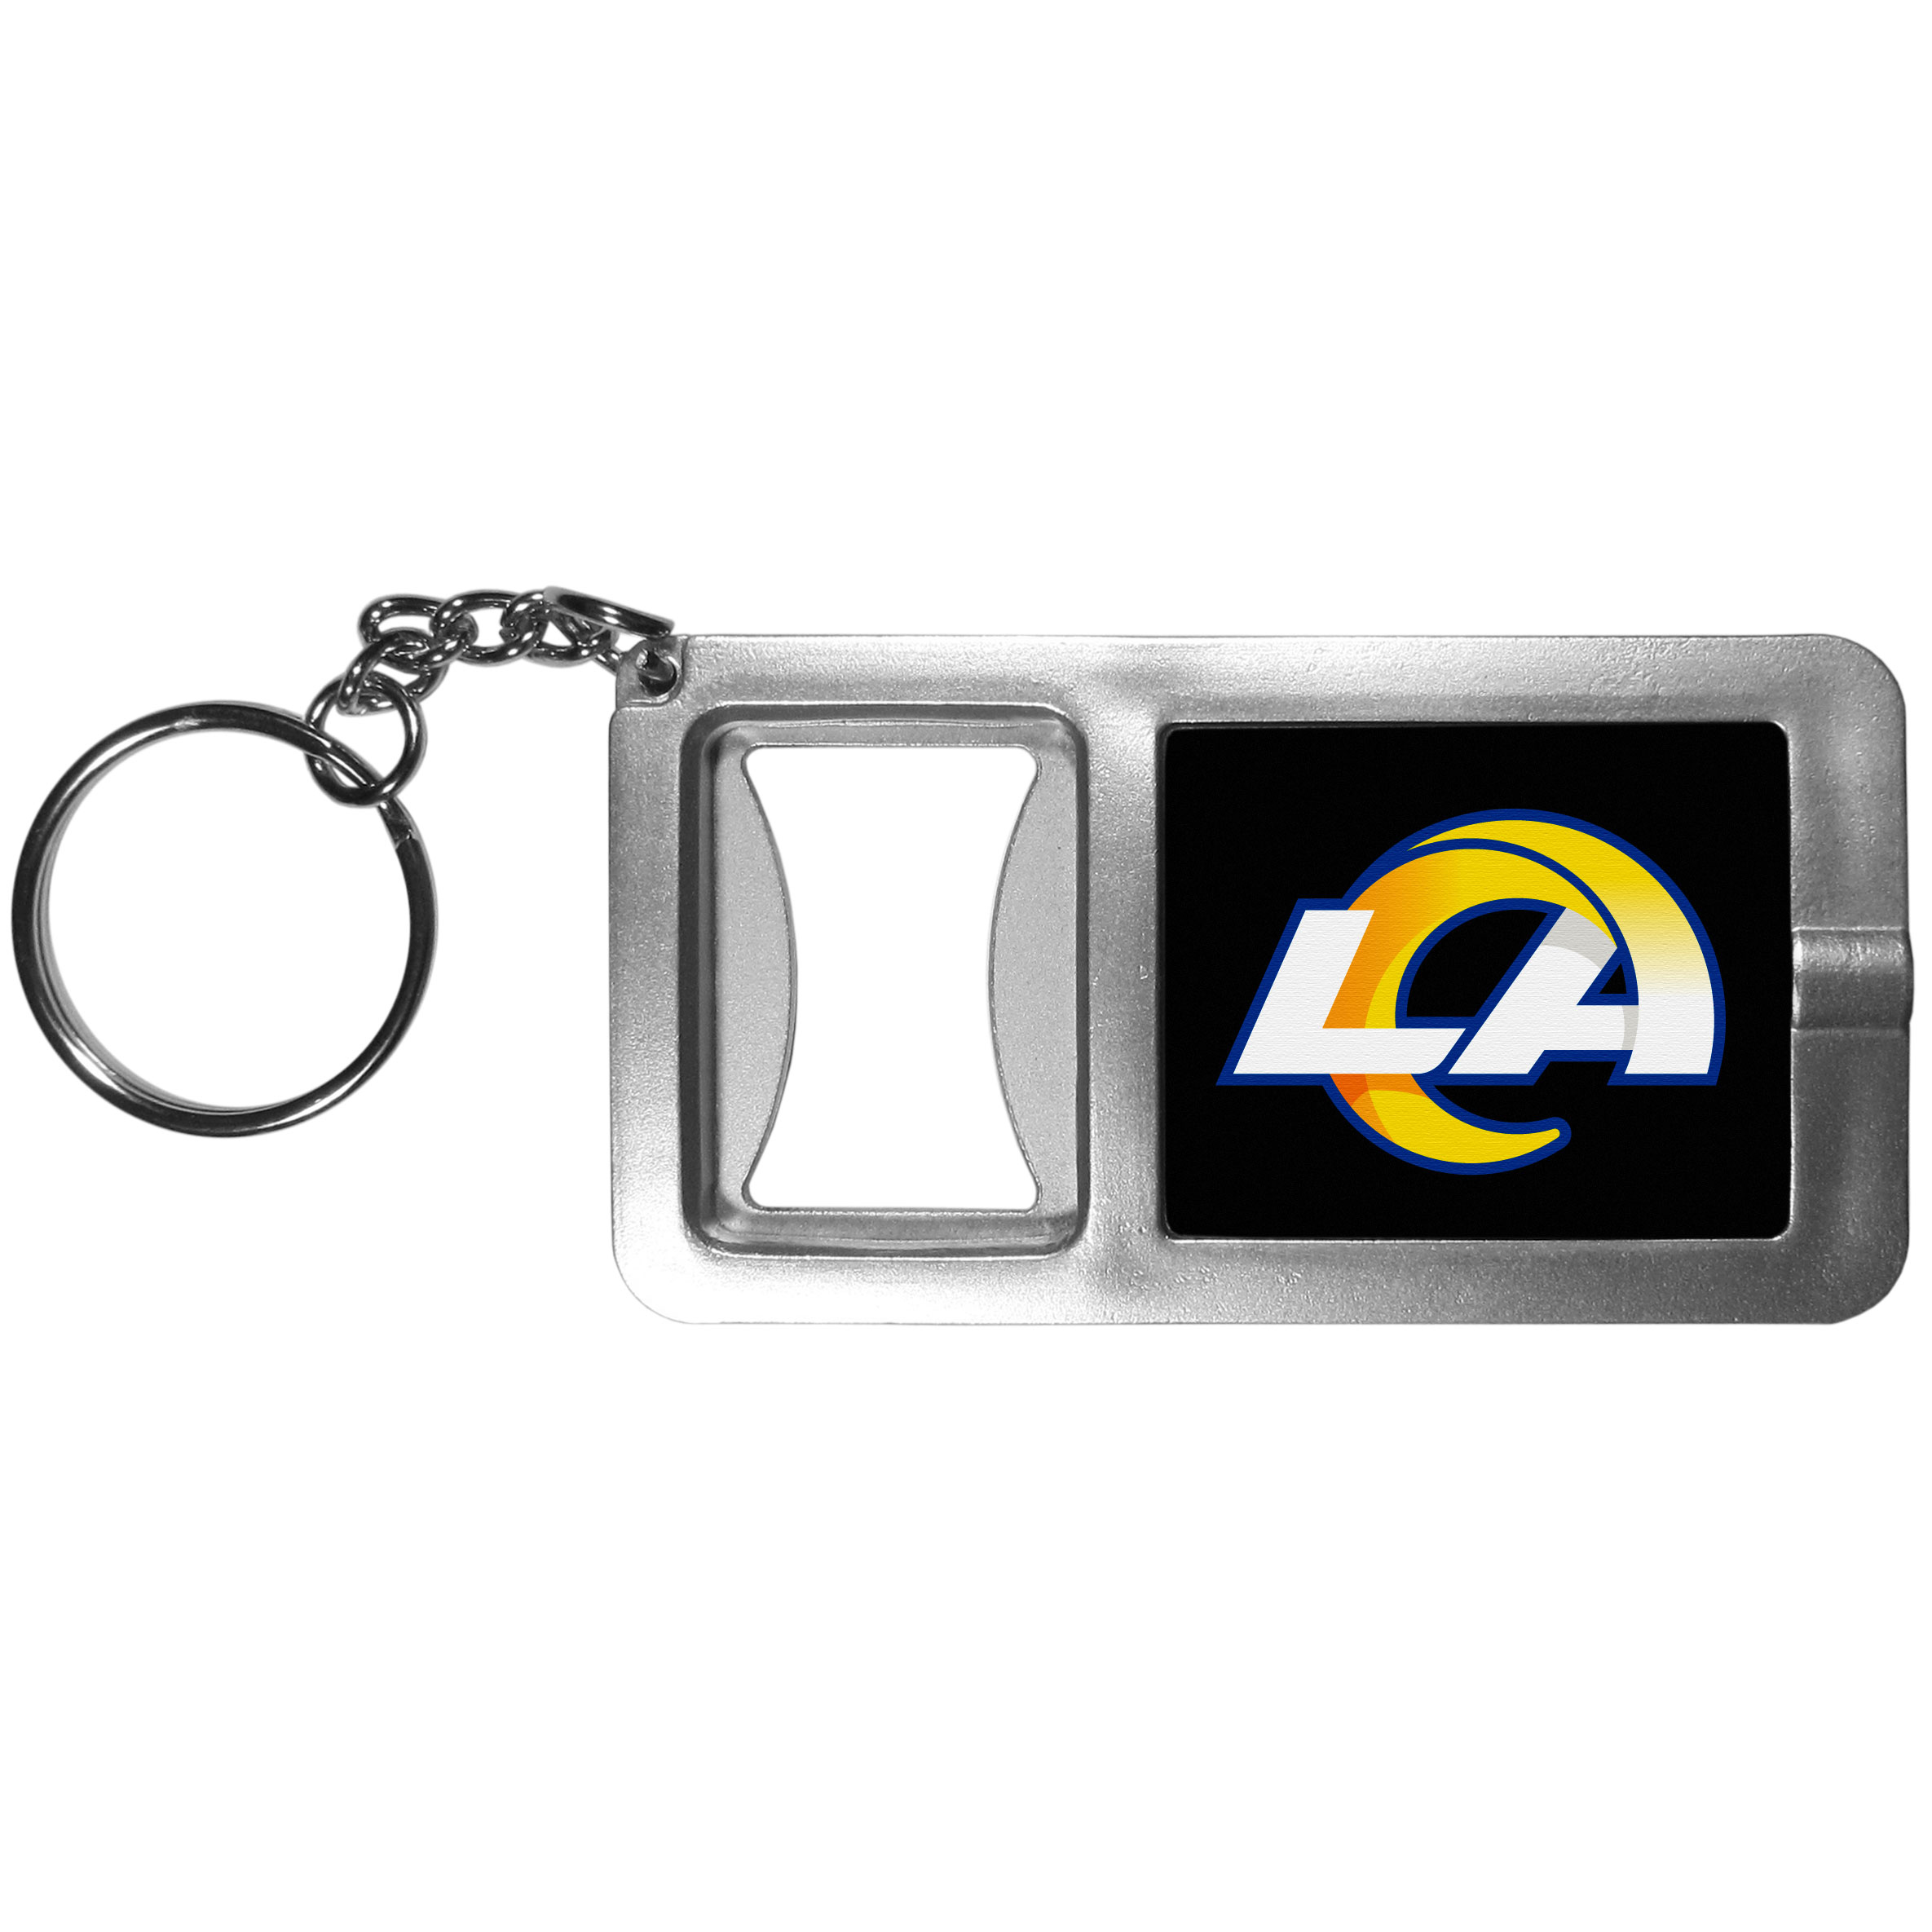 Los Angeles Rams Flashlight Key Chain with Bottle Opener - Never be without light with our Los Angeles Rams flashlight keychain that features a handy bottle opener feature. This versatile key chain is perfect for camping and travel and is a great way to show off your team pride!